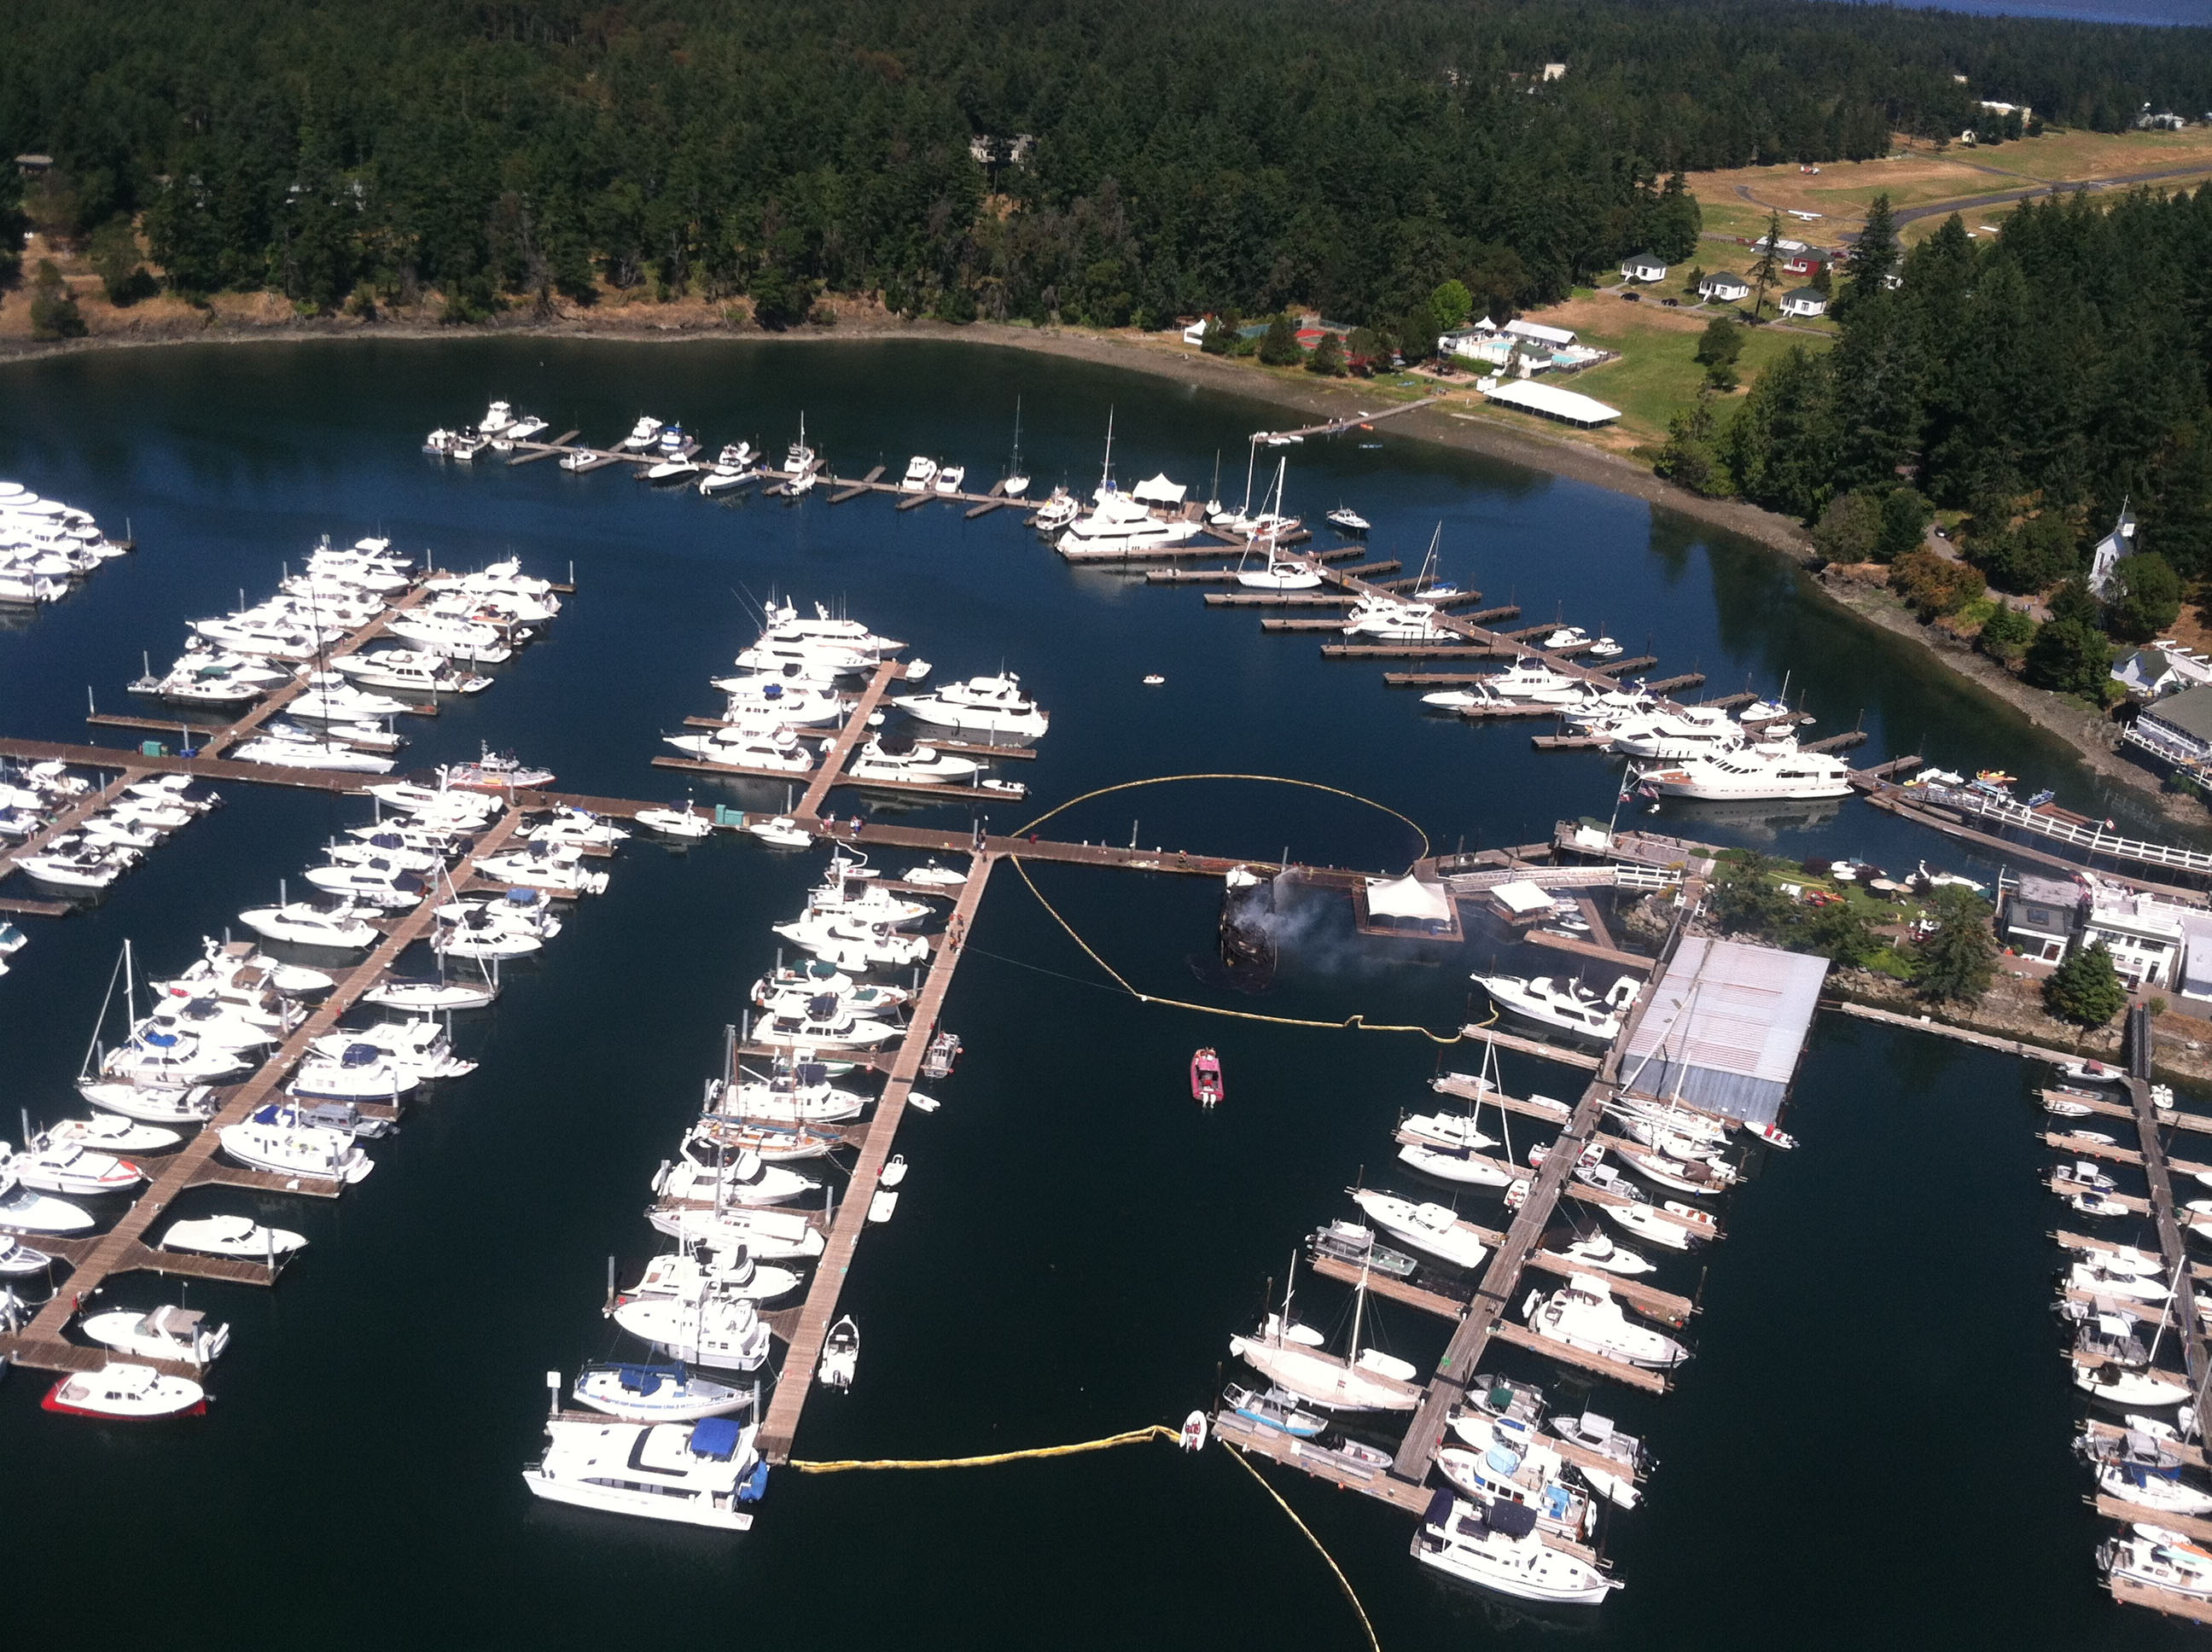 Ariel view of the Roche Harbor boat fire incident